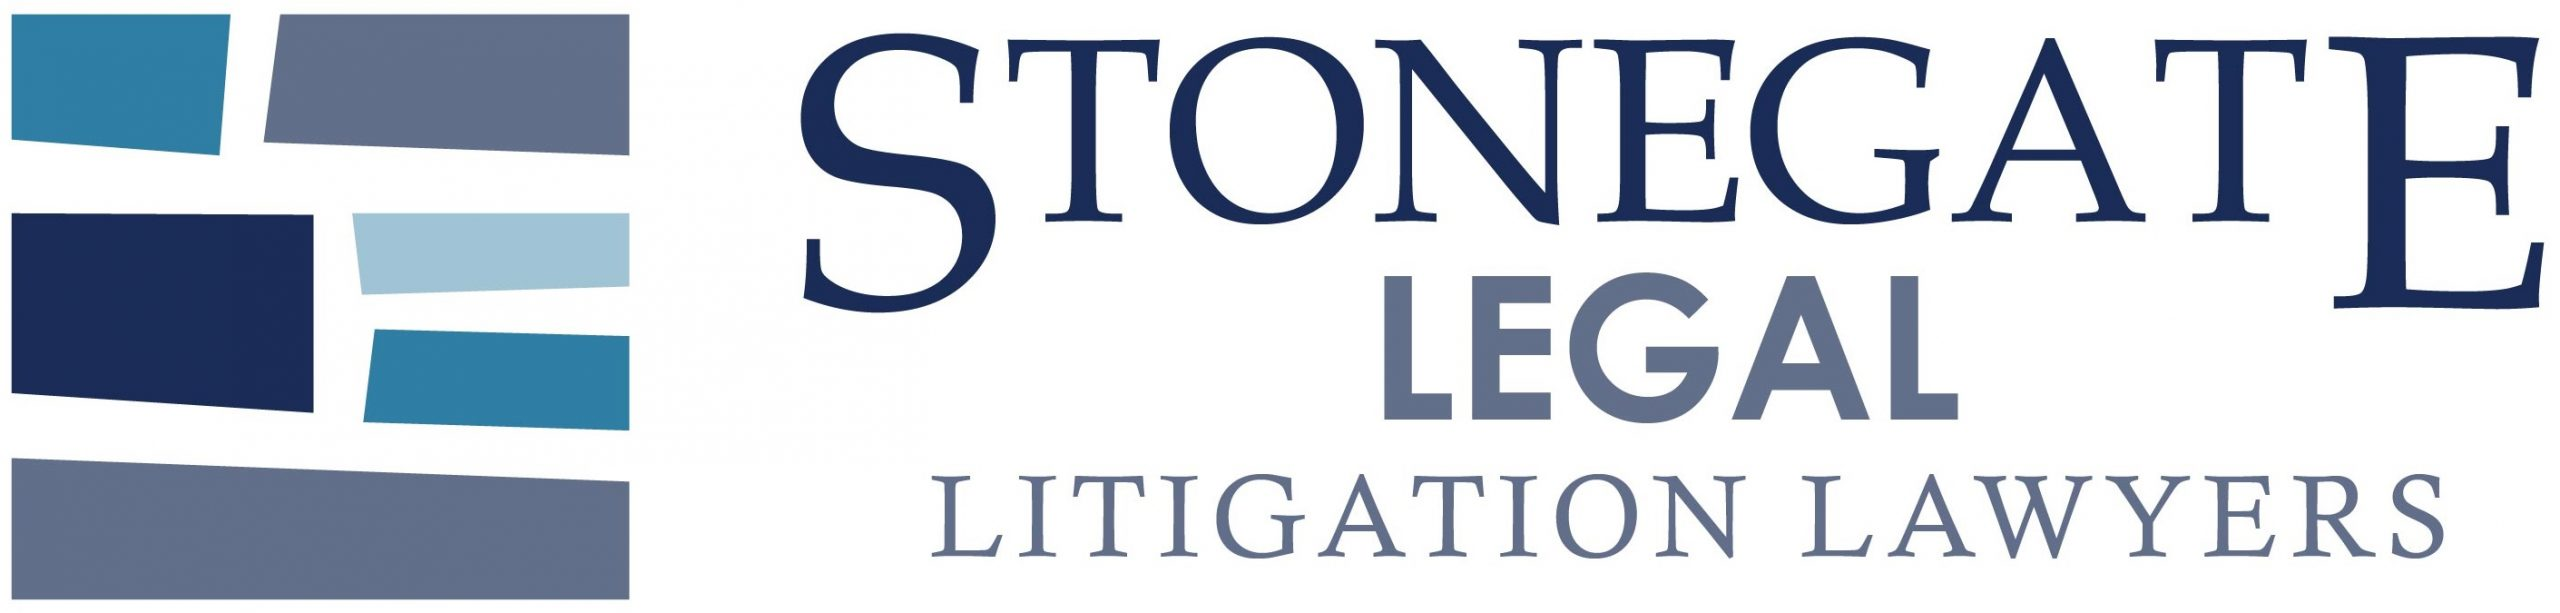 Stonegate Legal litigation lawyers in Brisbane and the Sunshine Coast